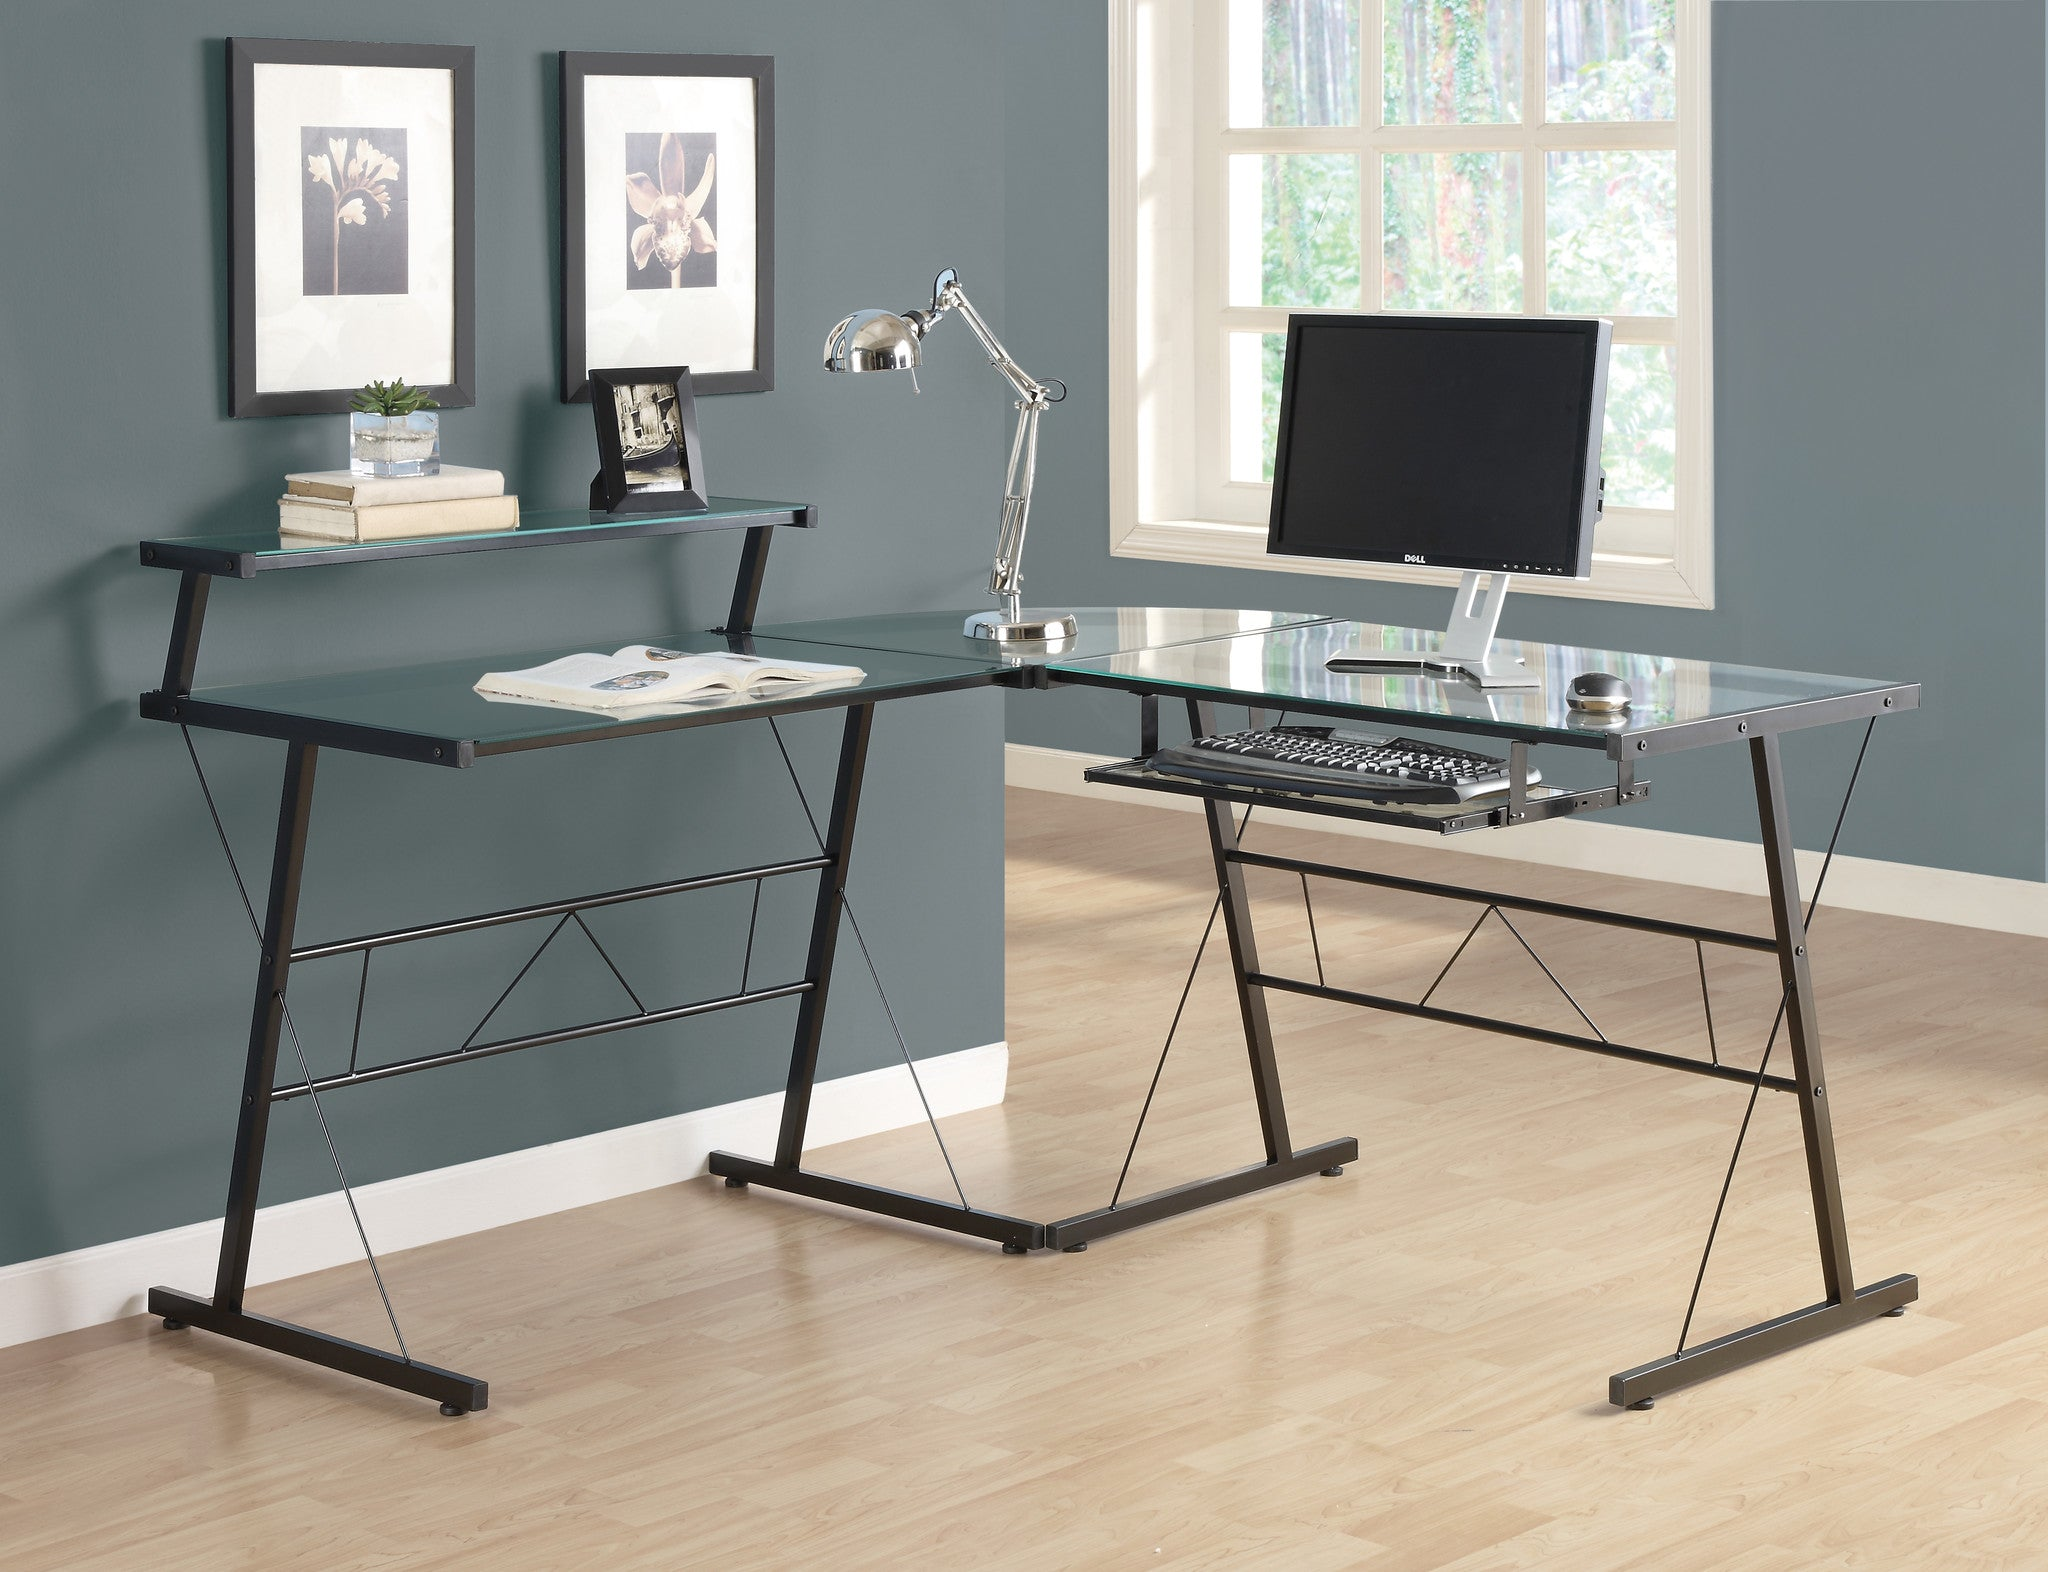 Black Metal Corner Computer Desk With Tempered Glass The Office